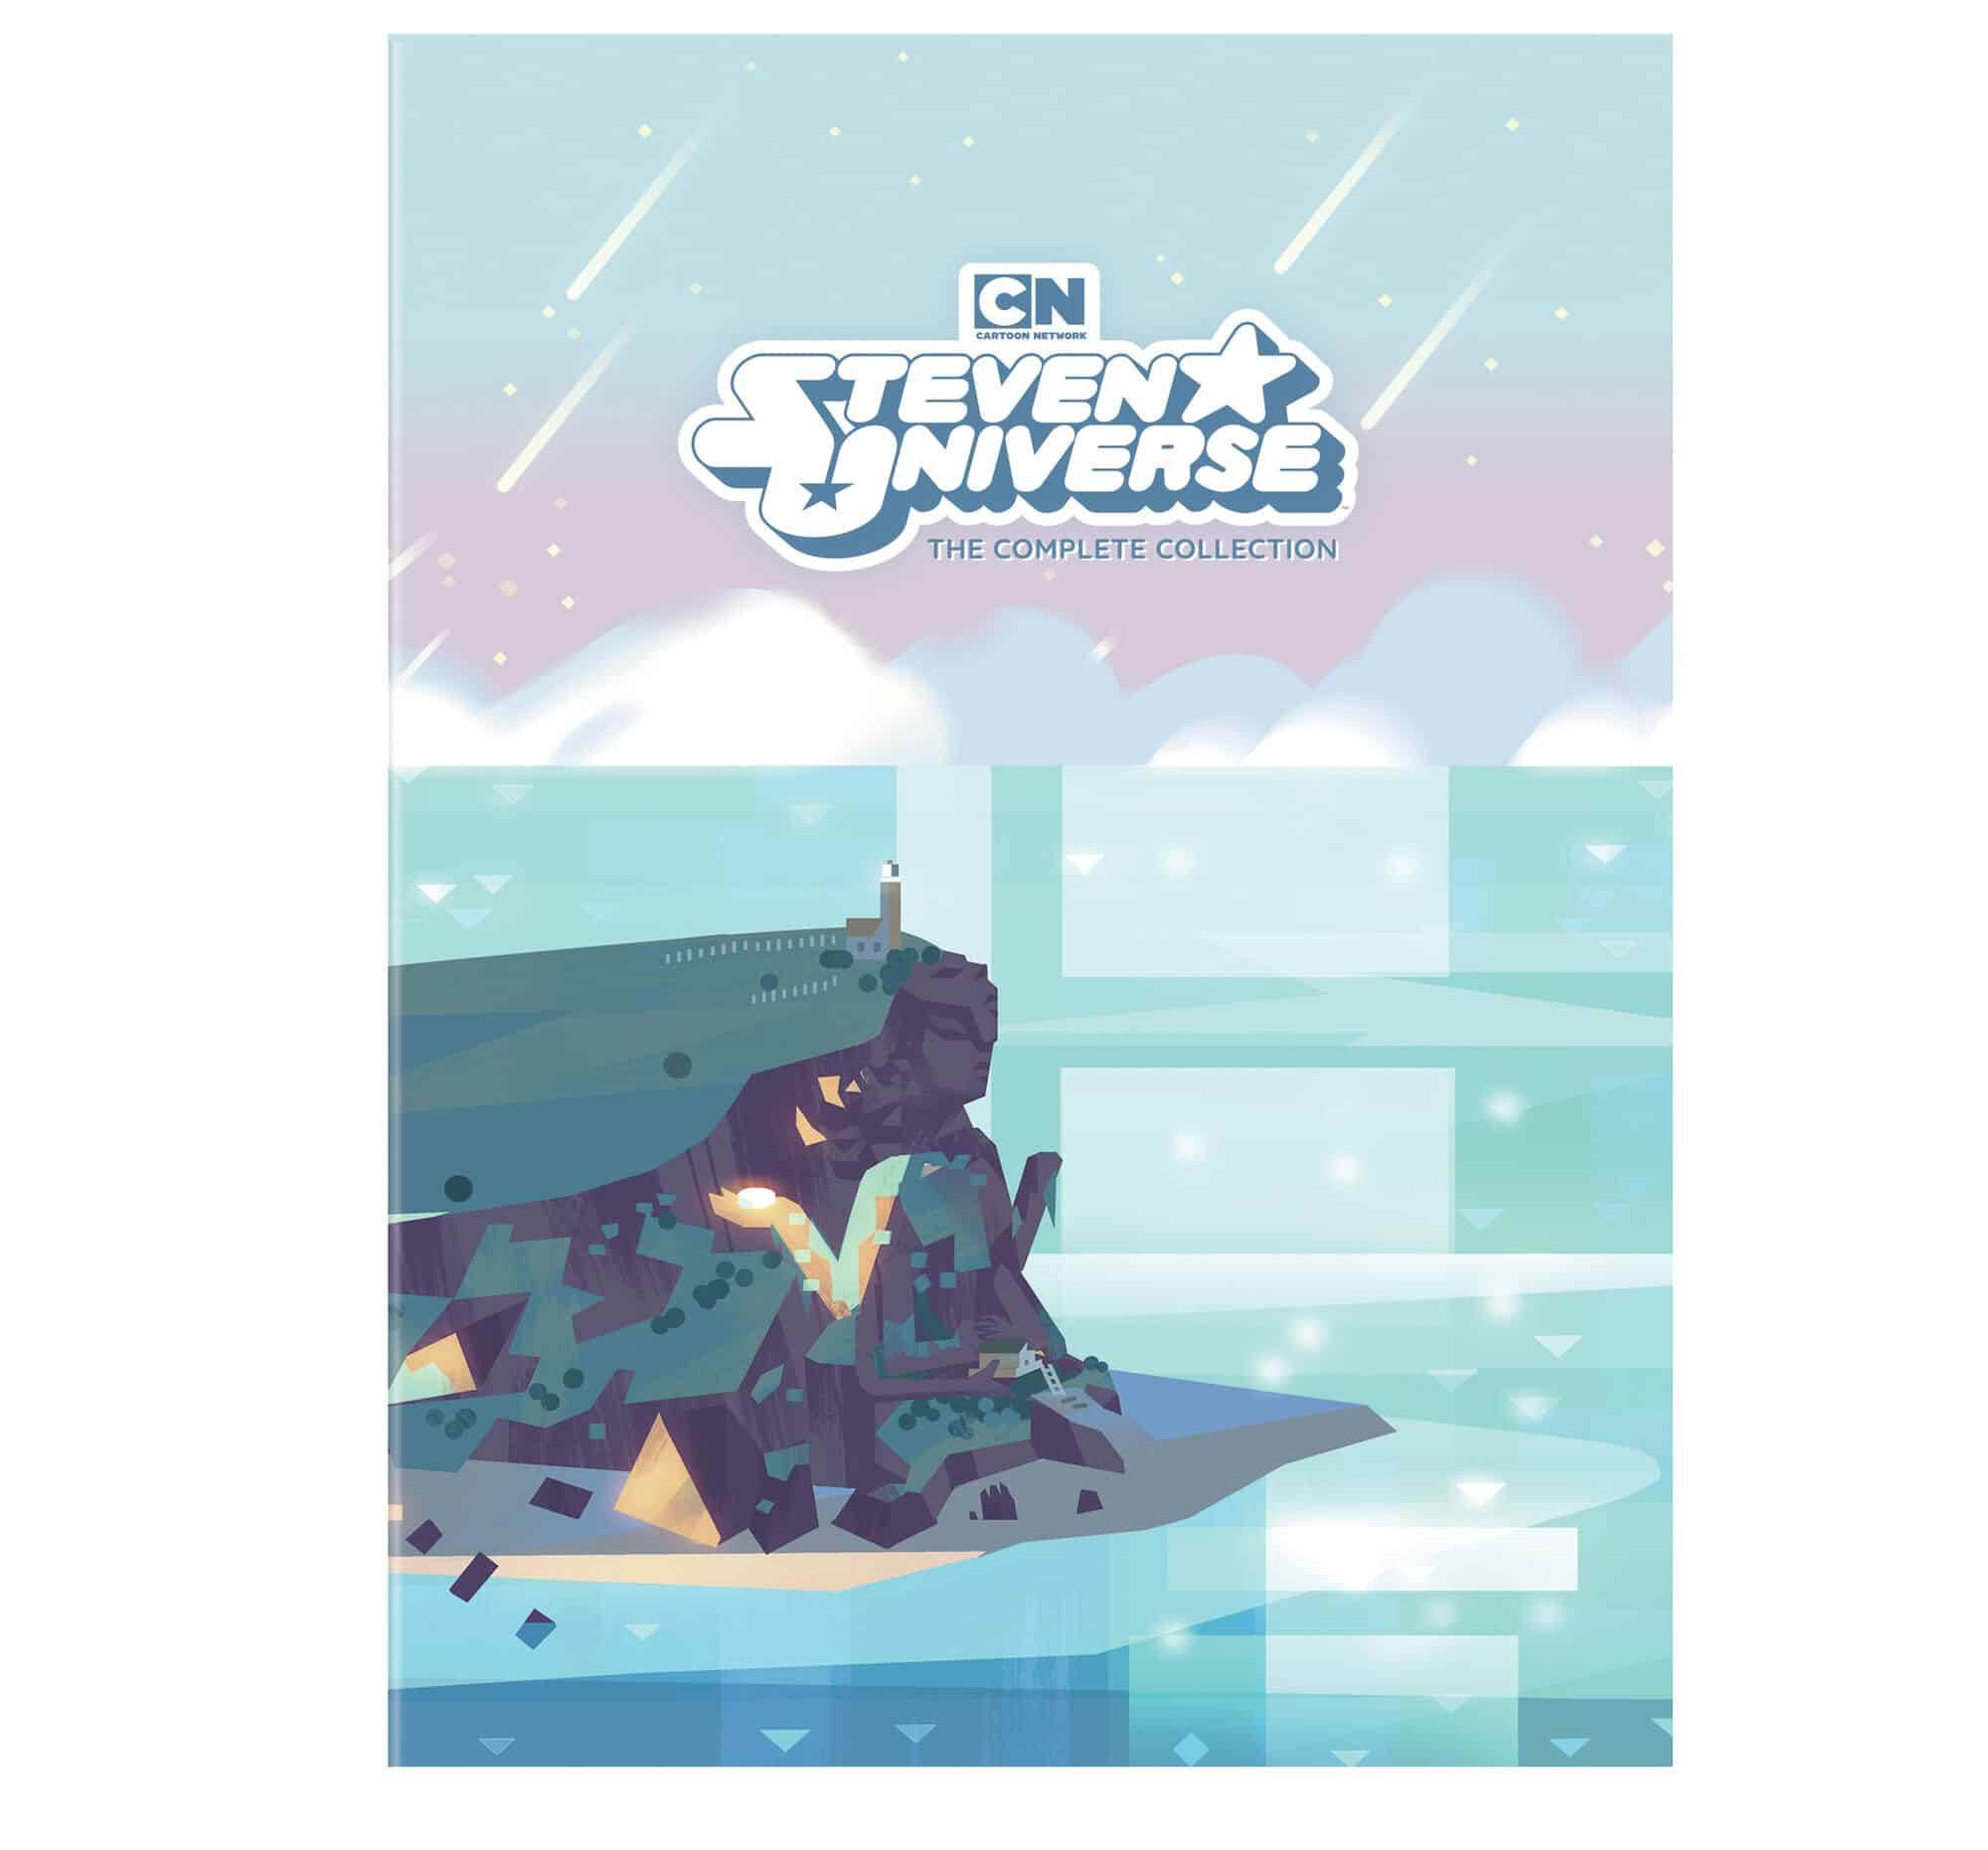 Steven Universe: The Complete Collection - This Gem Collection Arrives on DVD 12/8 2